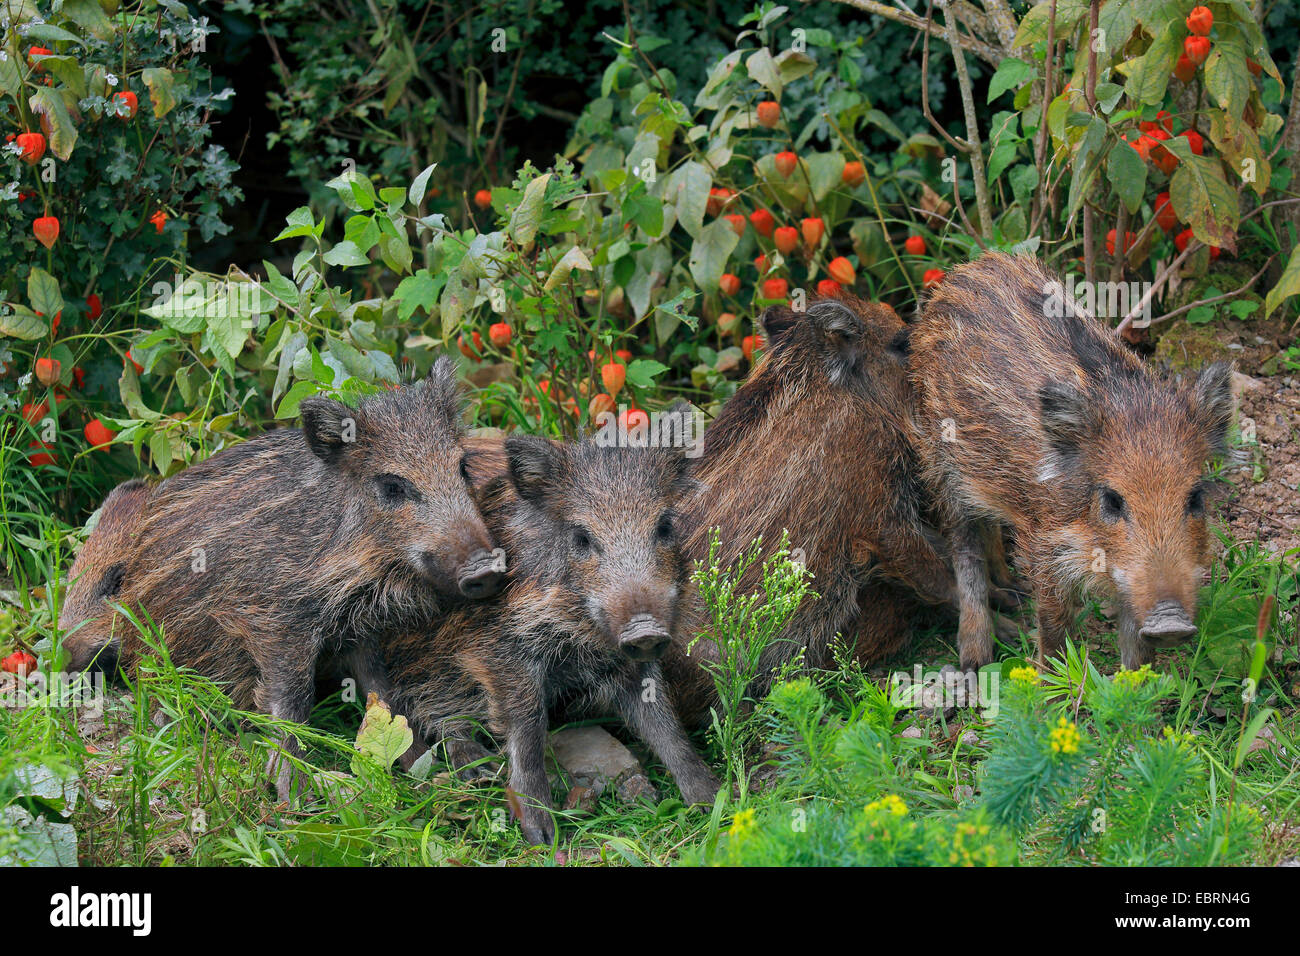 wild boar, pig, wild boar (Sus scrofa), shotes standing together in the garden, Germany, Baden-Wuerttemberg - Stock Image